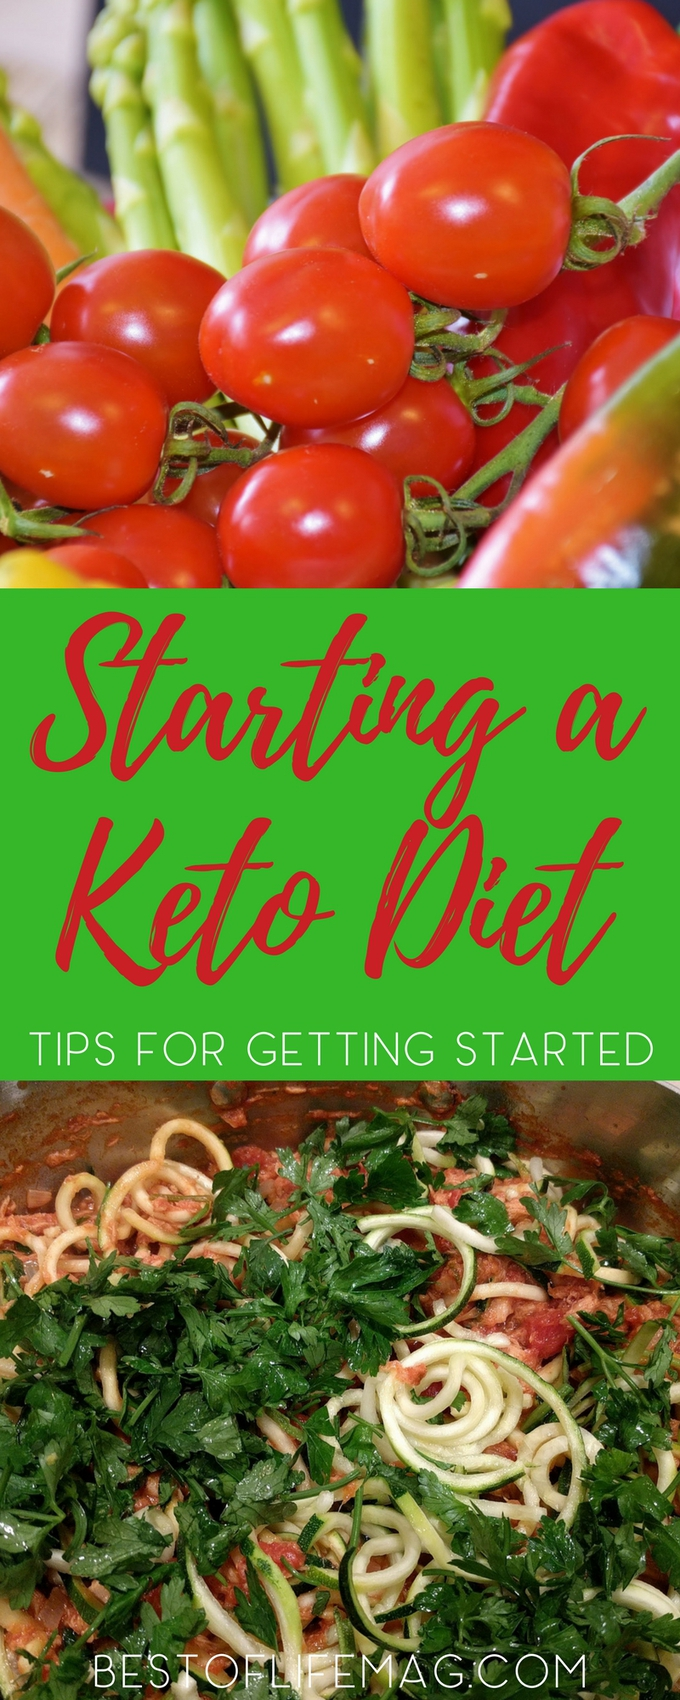 If you decide to give Keto a try, there are ten important tips to for starting a ketogenic diet that you should keep in mind. How to Start a Ketogenic Diet | Ways to Start a Ketogenic Diet | What is a Ketogenic Diet | Tips for Starting a Ketogenic Diet | Tips for a Keto Diet #ketodiet #ketogenic #dieting #mealplanning #ketogenicdiet #weightloss